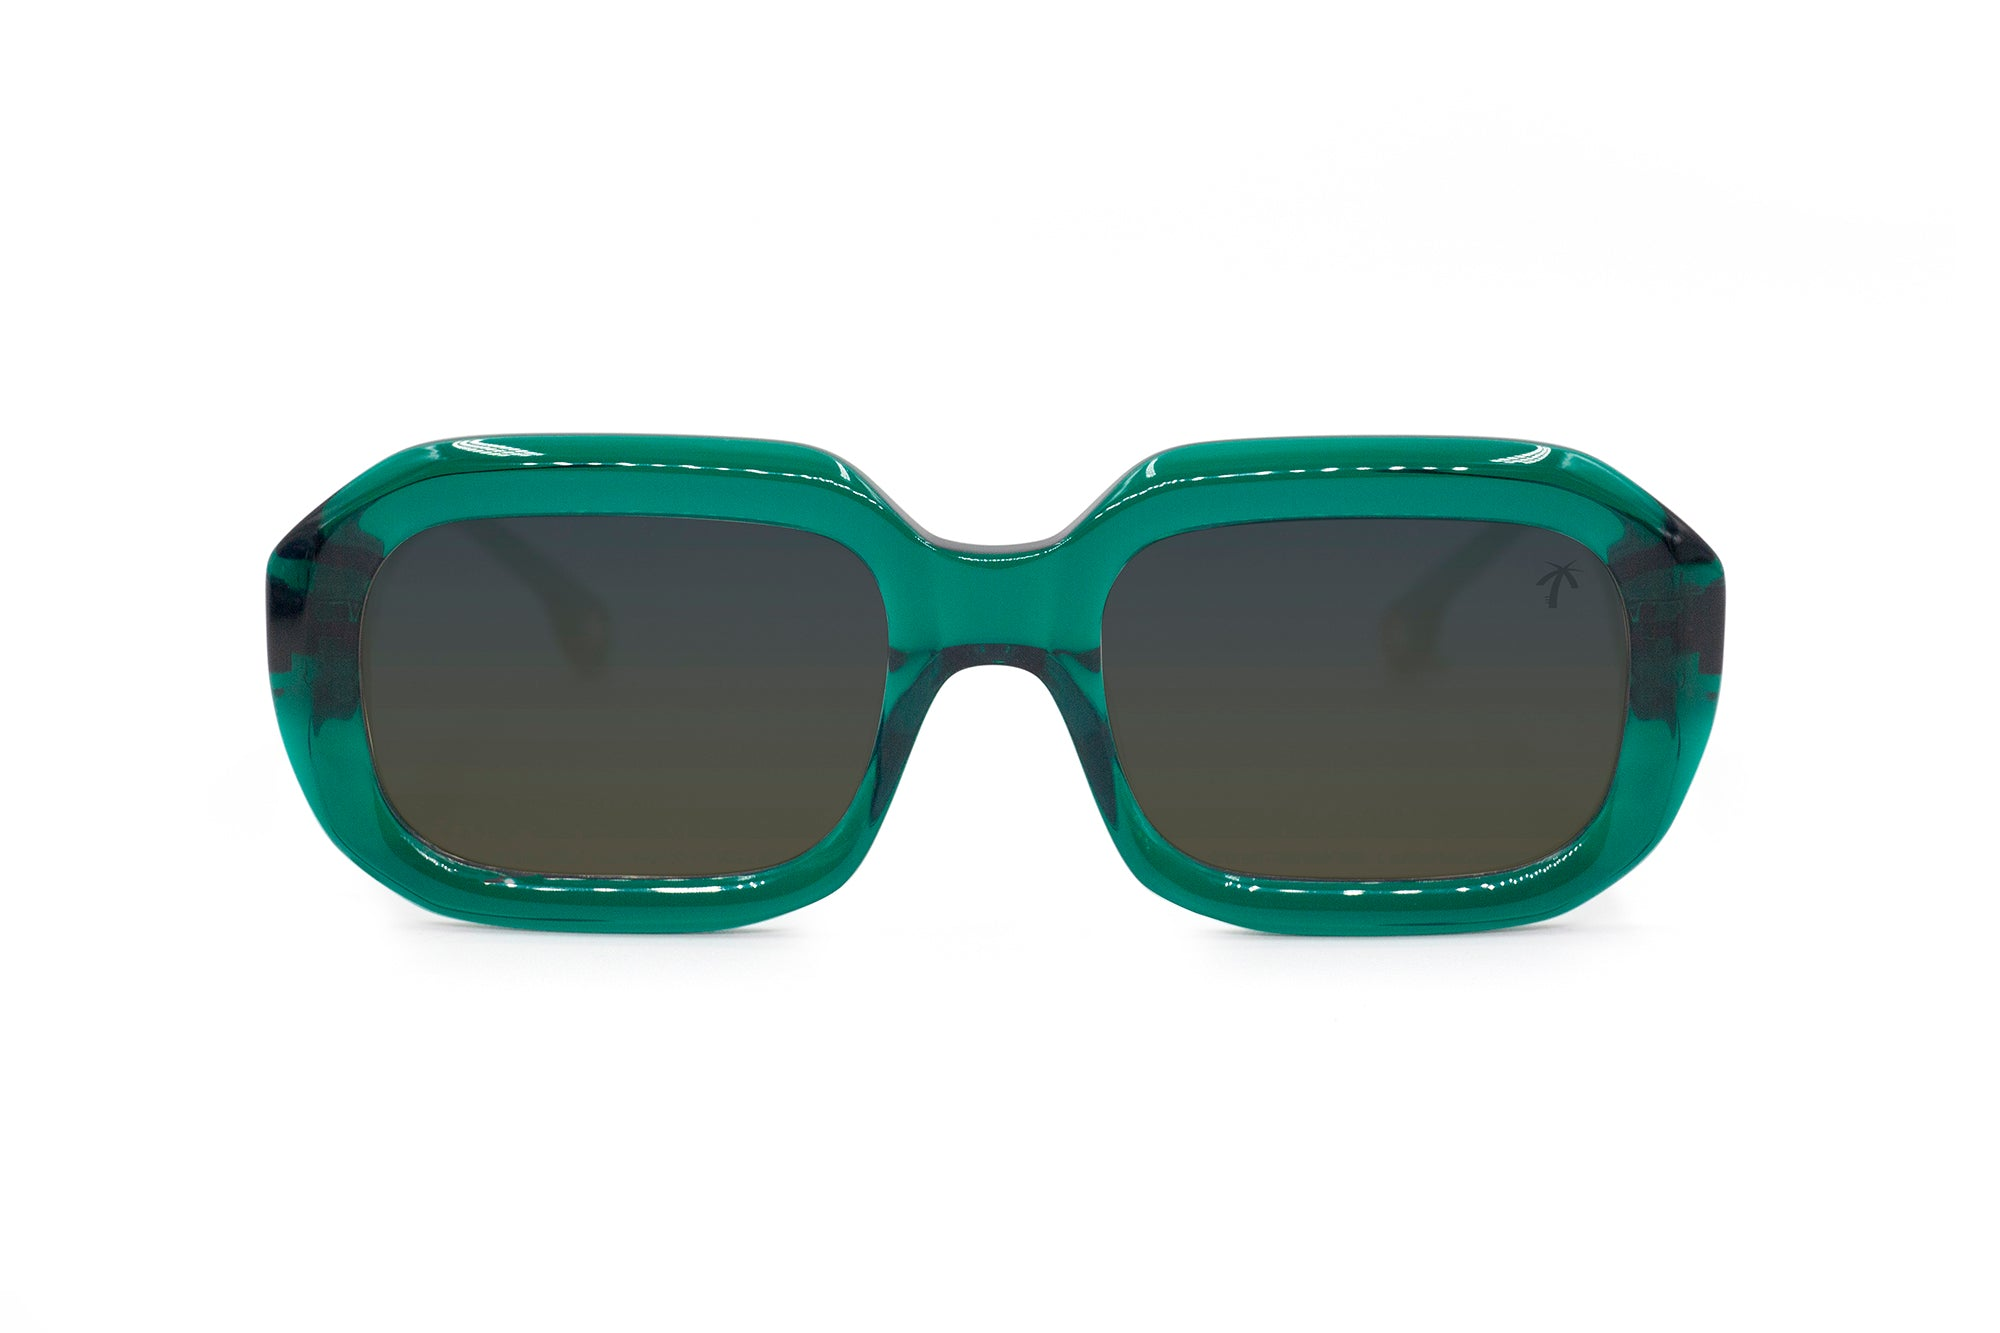 Compton in dark green - Peppertint - Designer sunglasses